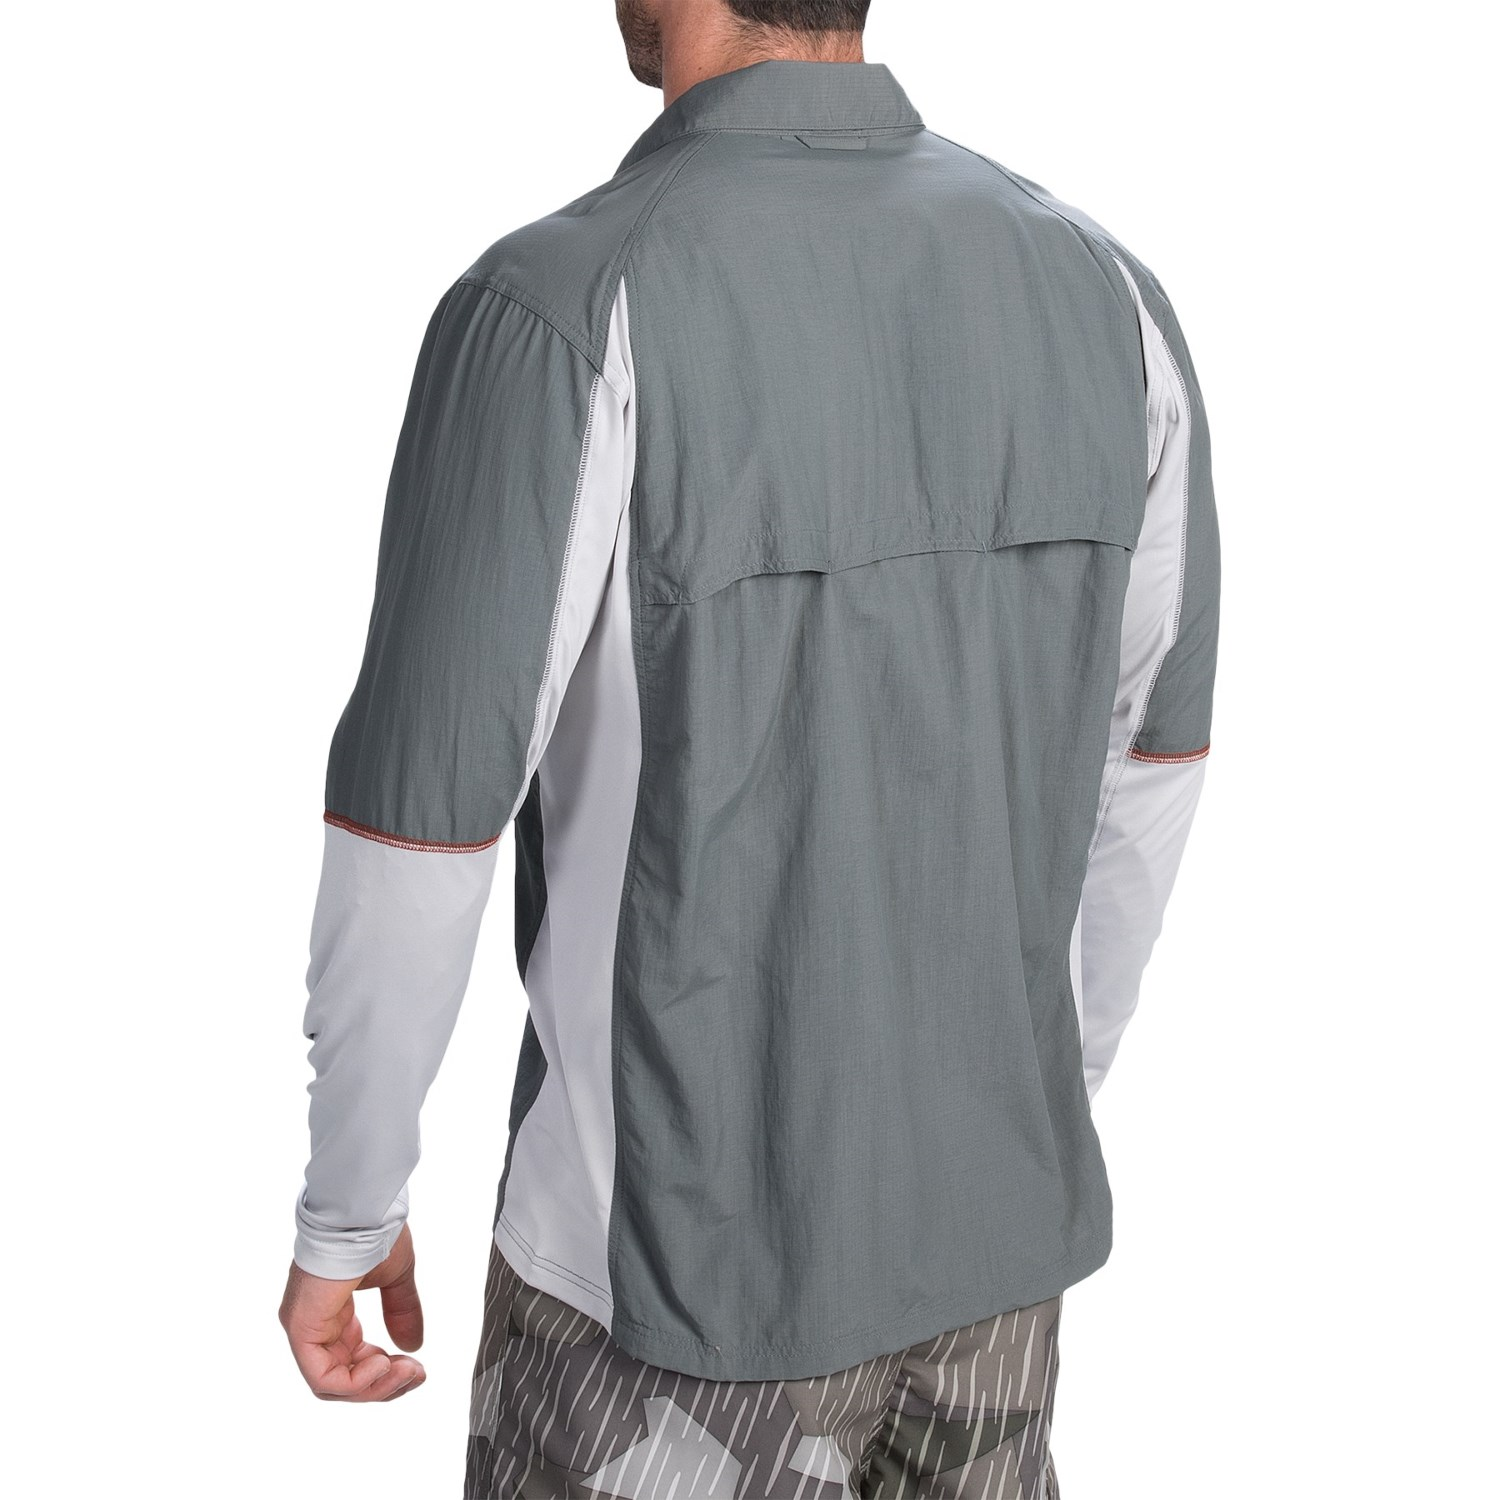 simms taimen tricomp fishing shirt for men 104vf save 46